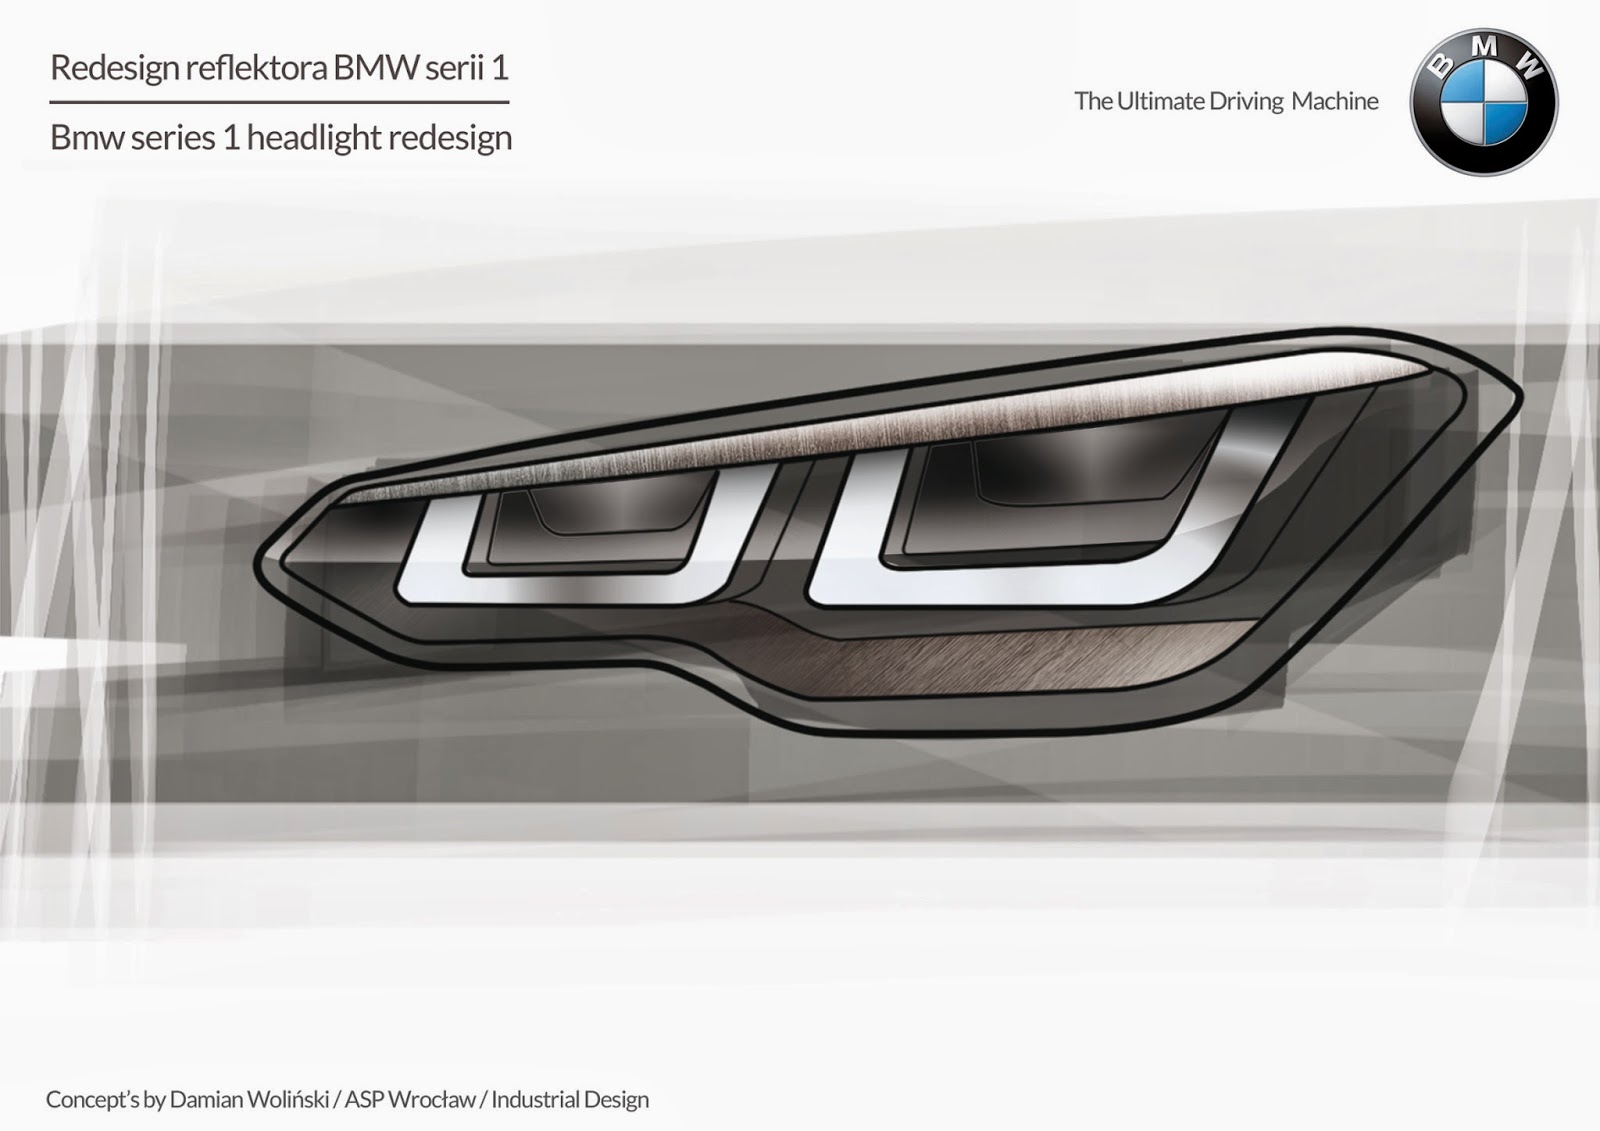 Car Design Sketches And Drawings. Bmw Series 1 - Headlights Redesignu0026#39;s